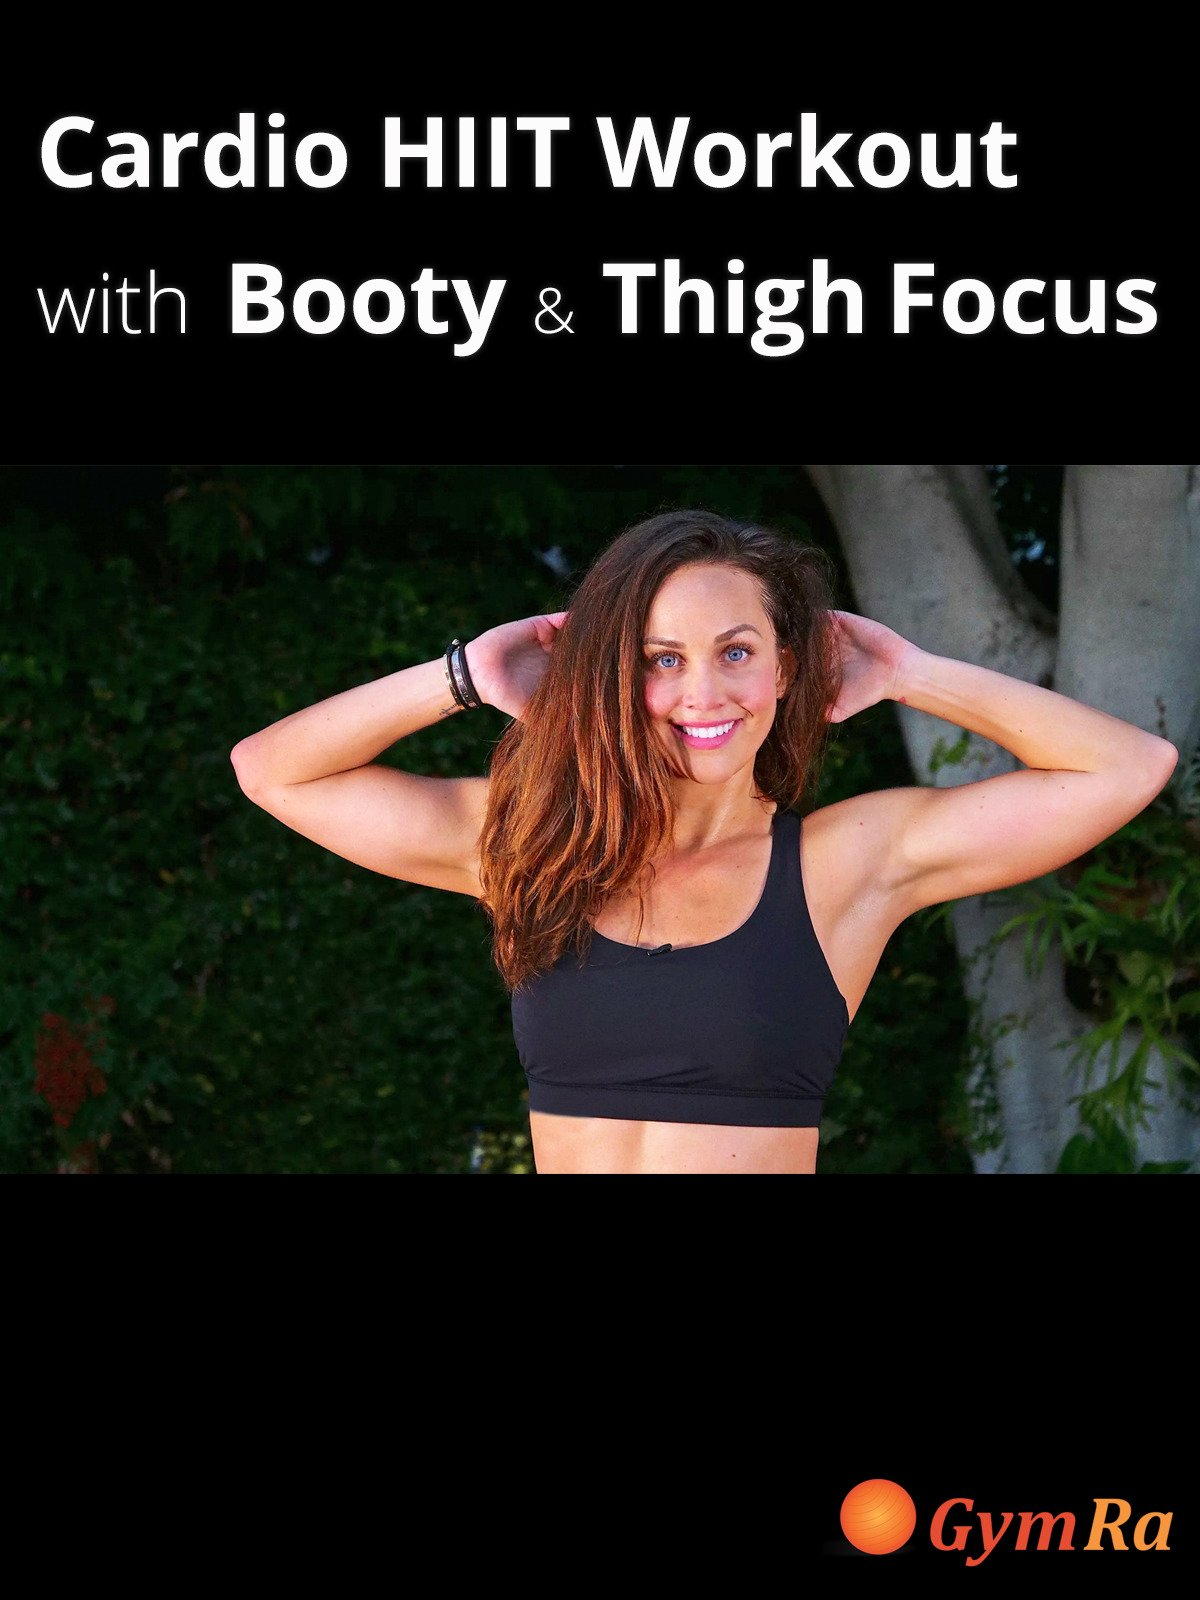 Cardio HIIT Workout with Booty & Thigh Focus